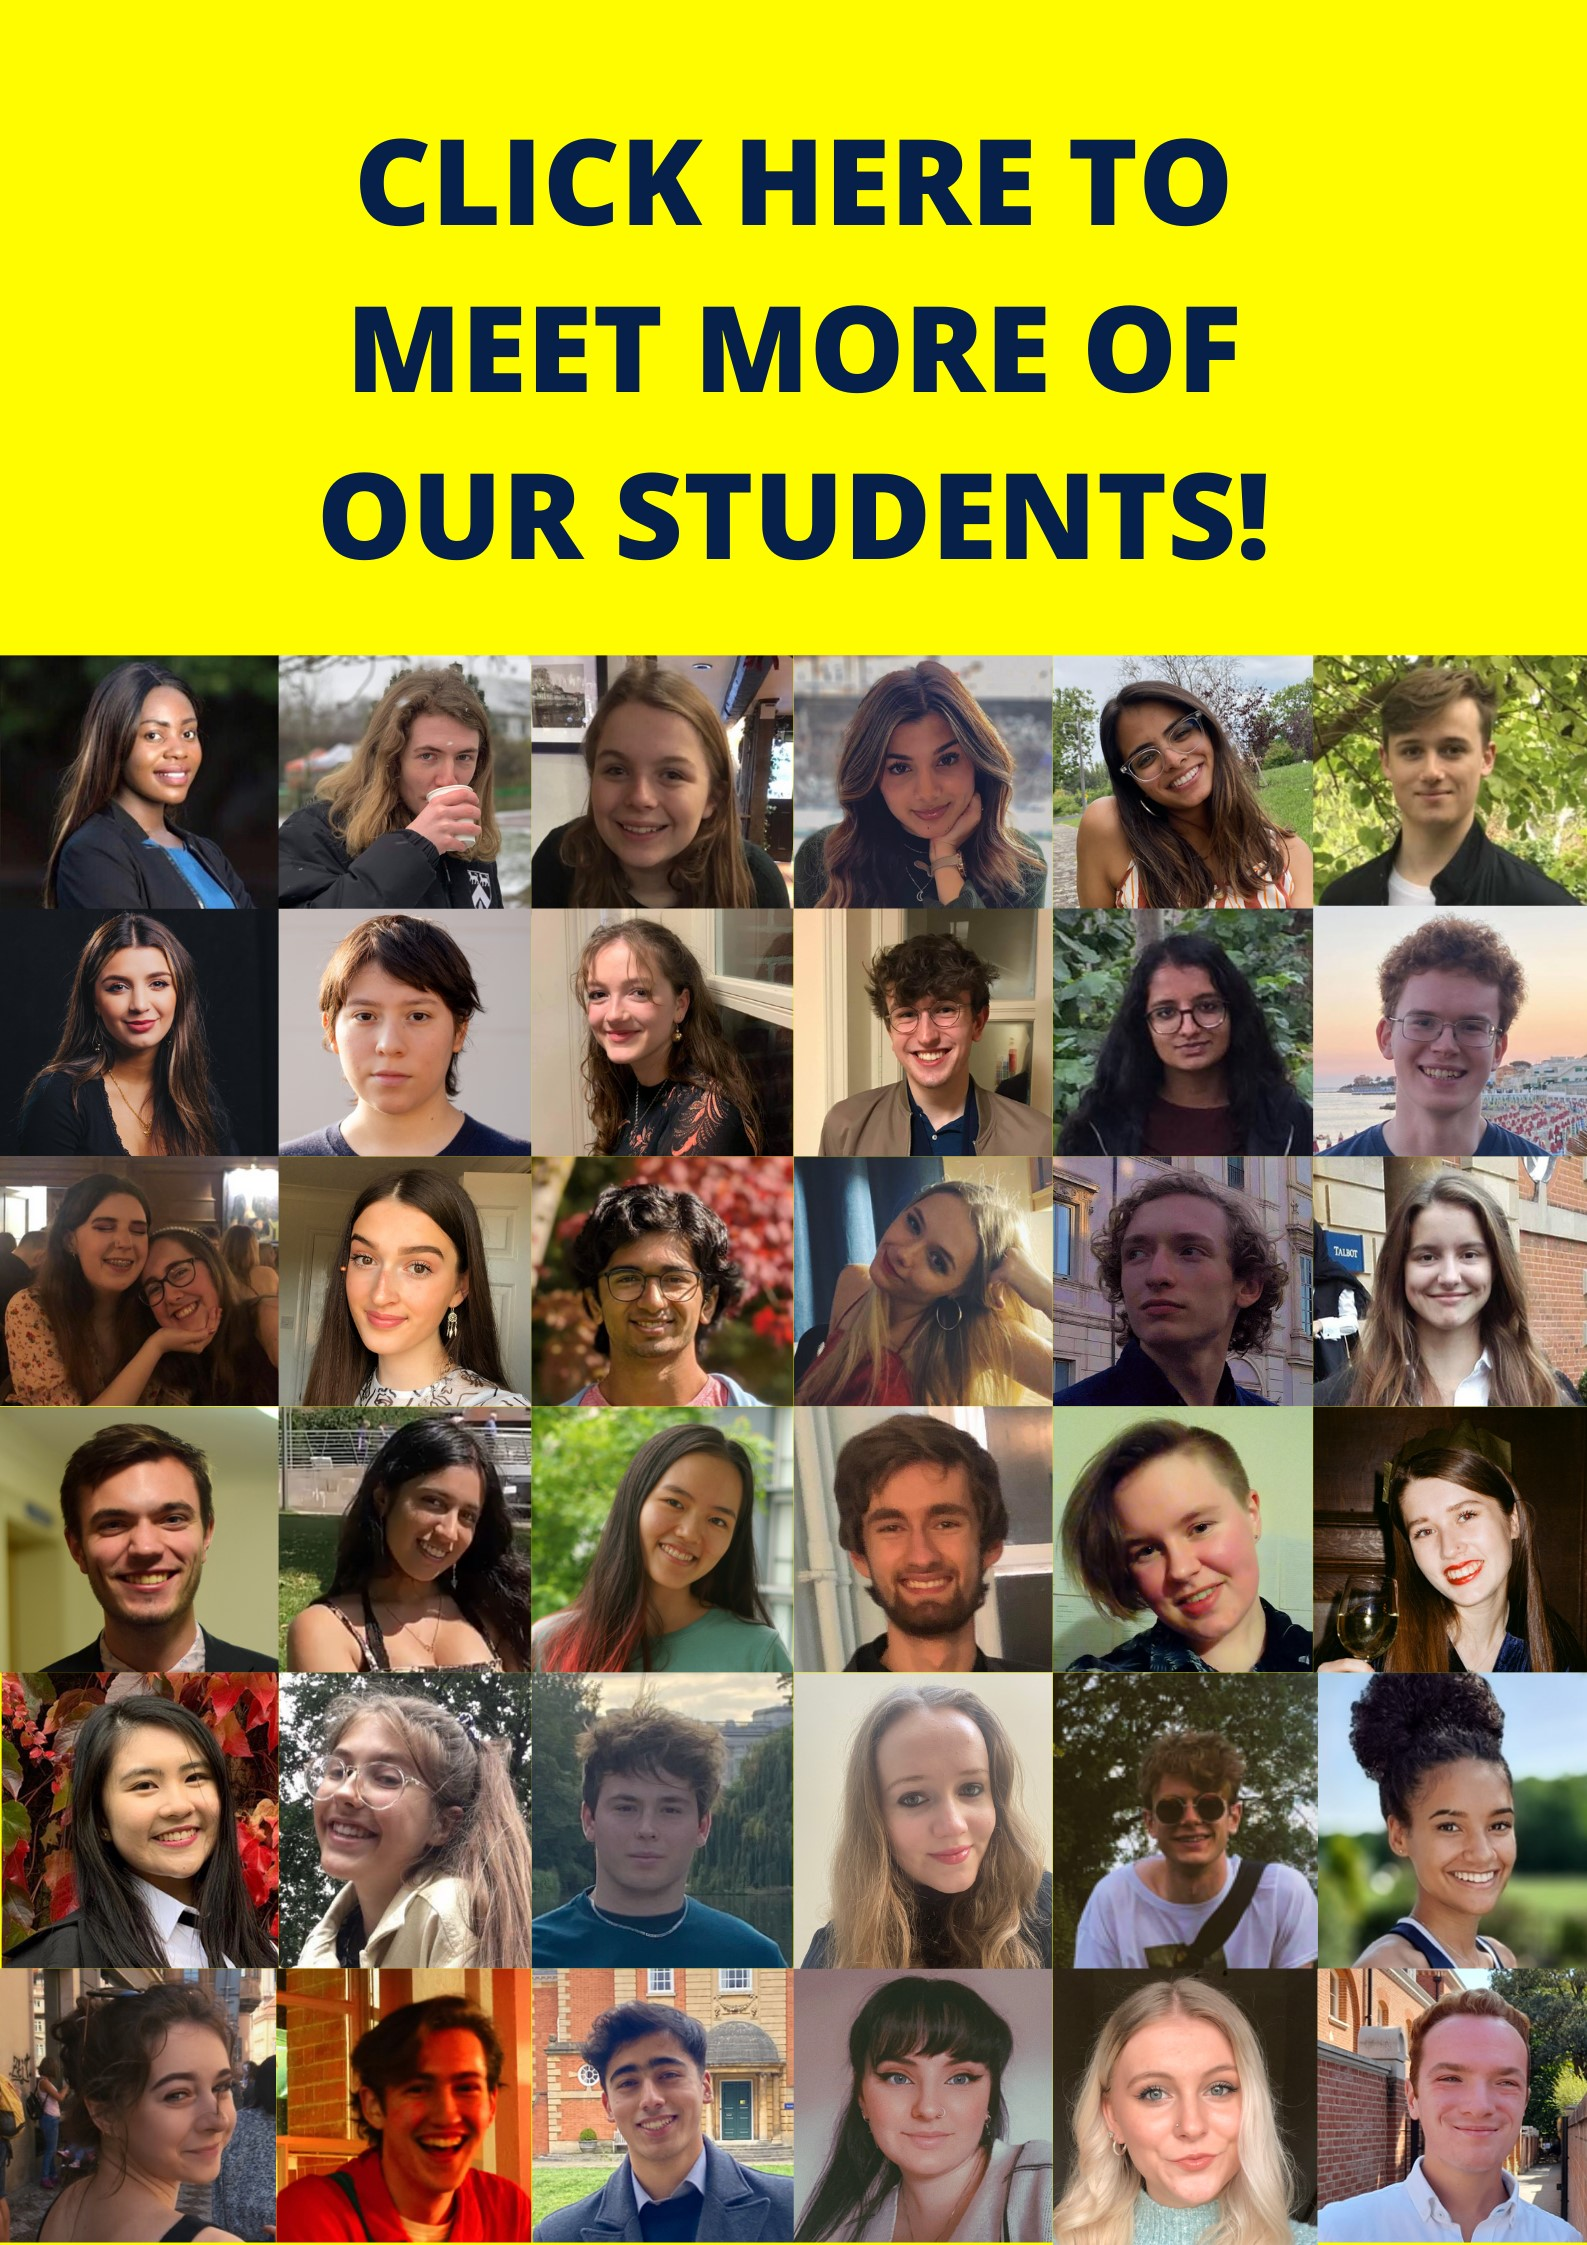 Photos of 36 students, with text 'click here to meet more of our students'